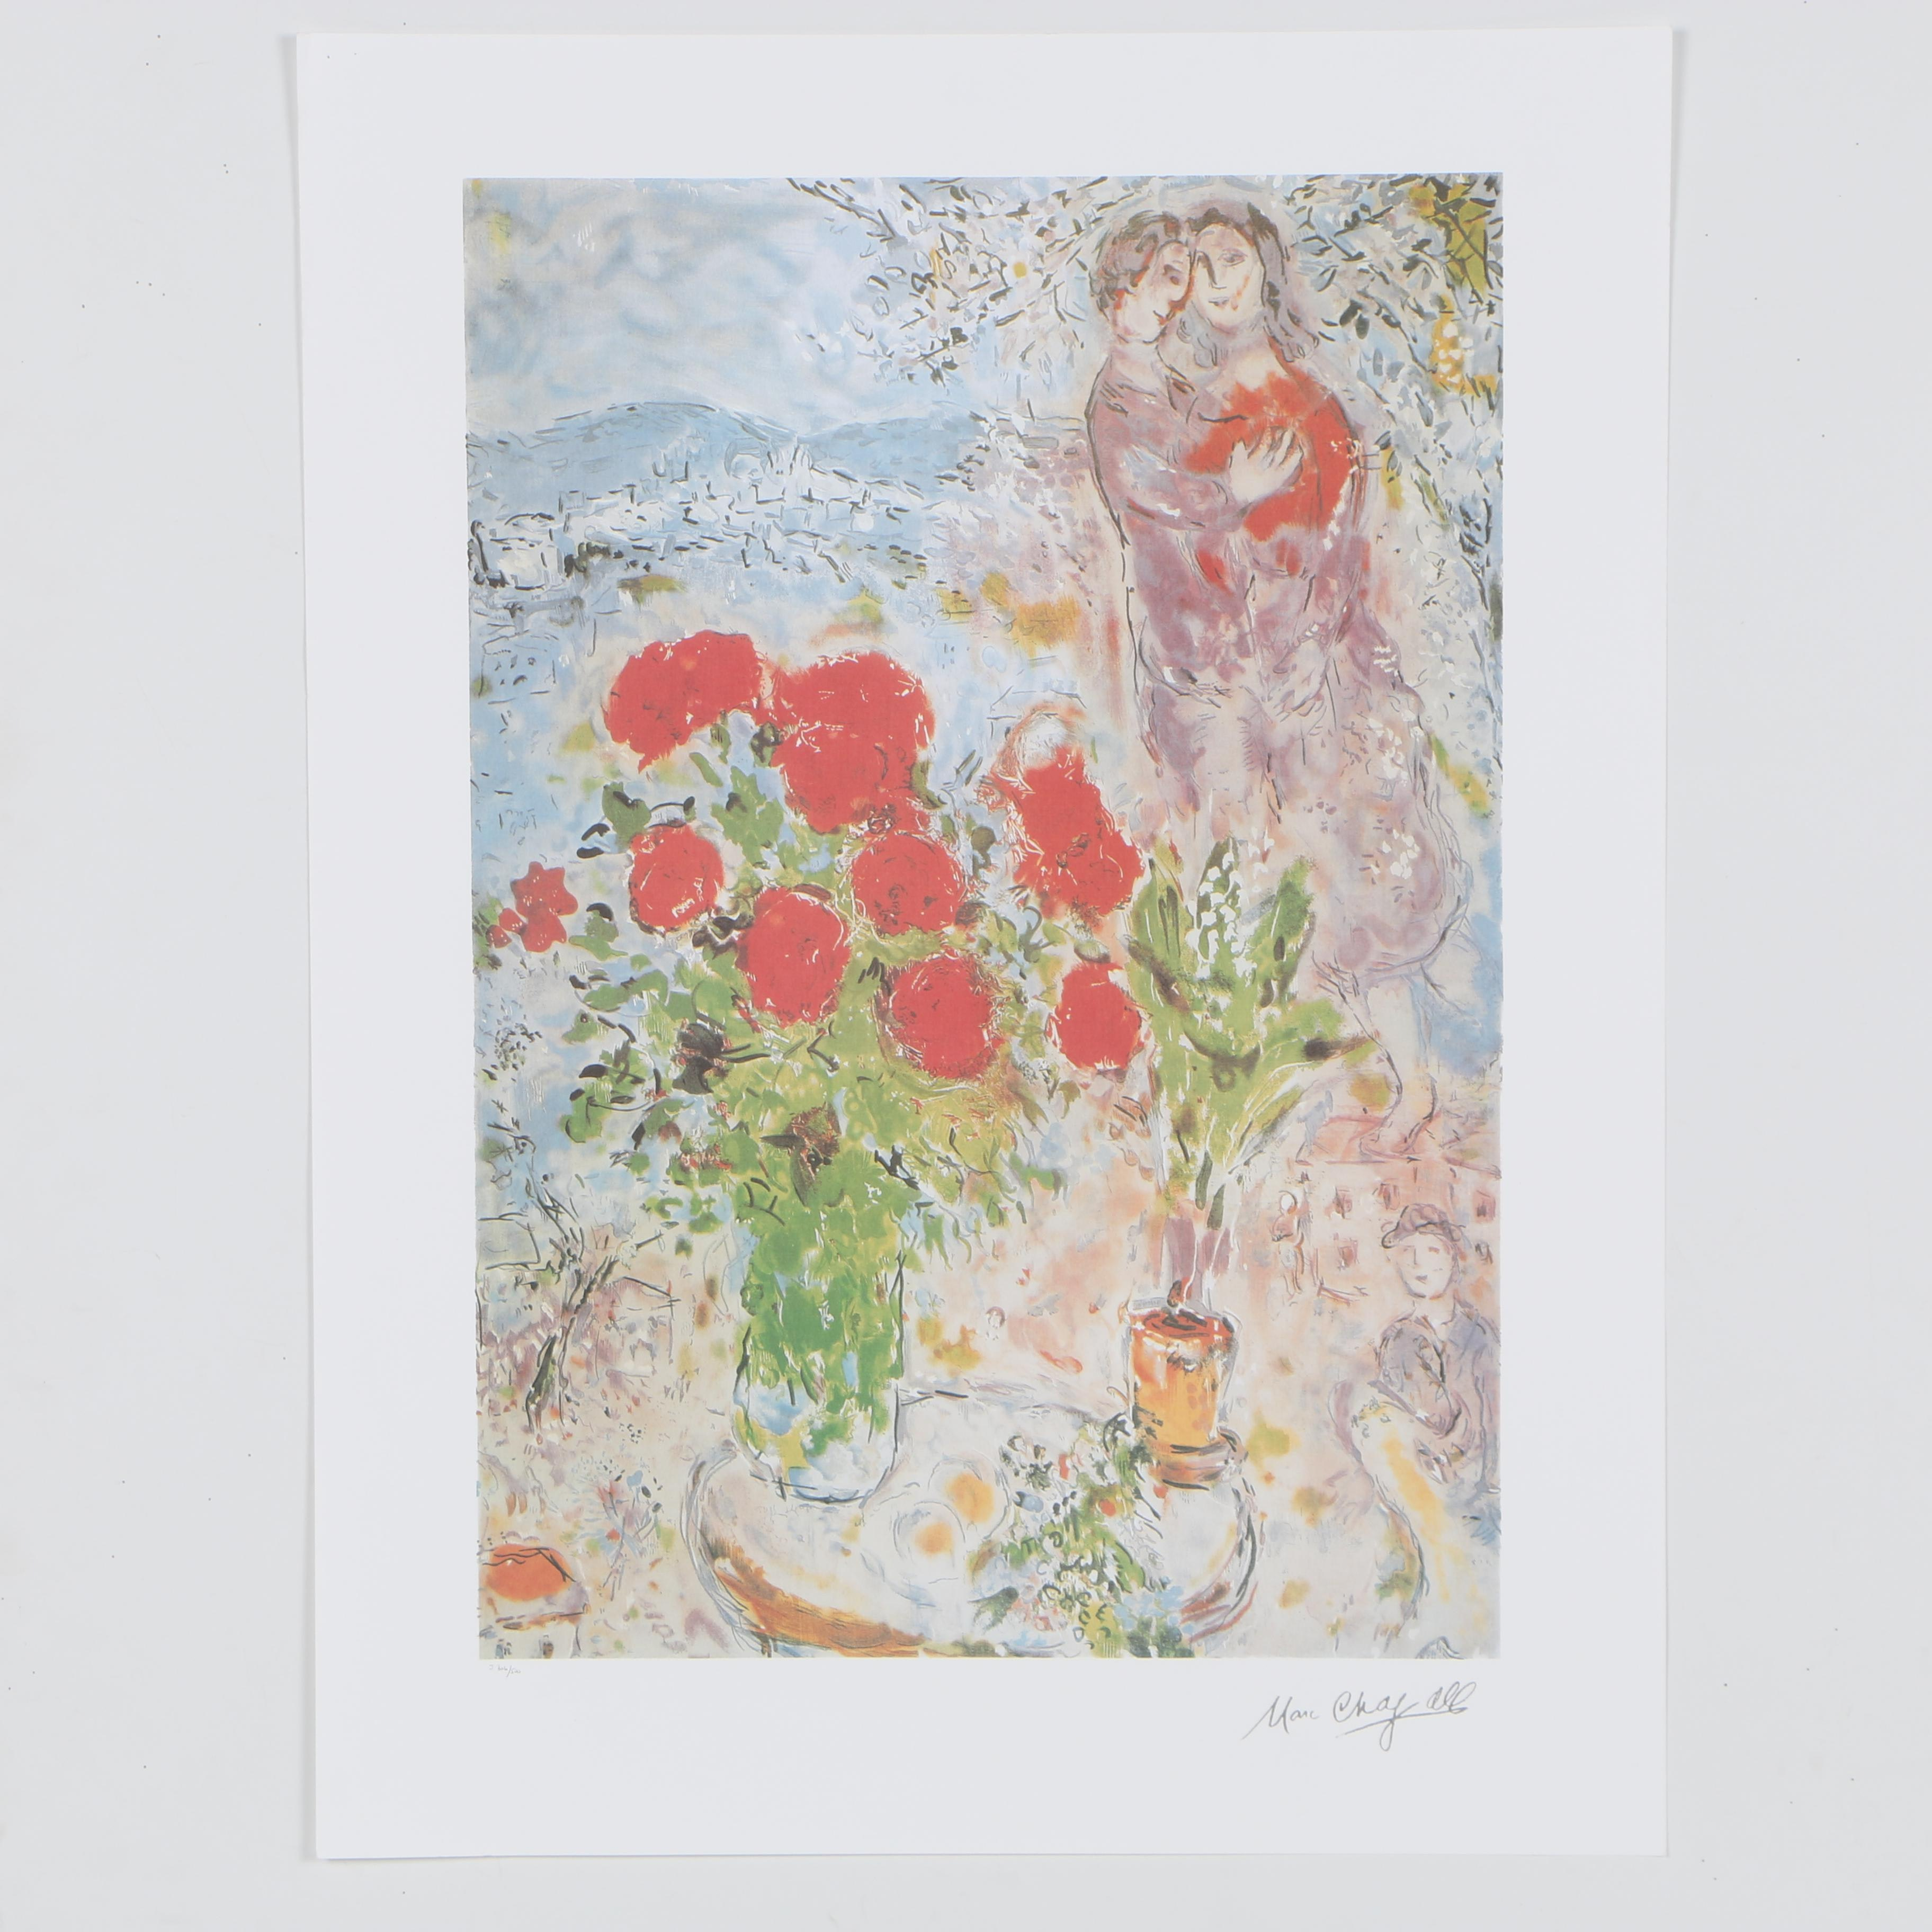 """2003 Offset Lithograph after Marc Chagall """"Red Bouquet with Lovers"""""""